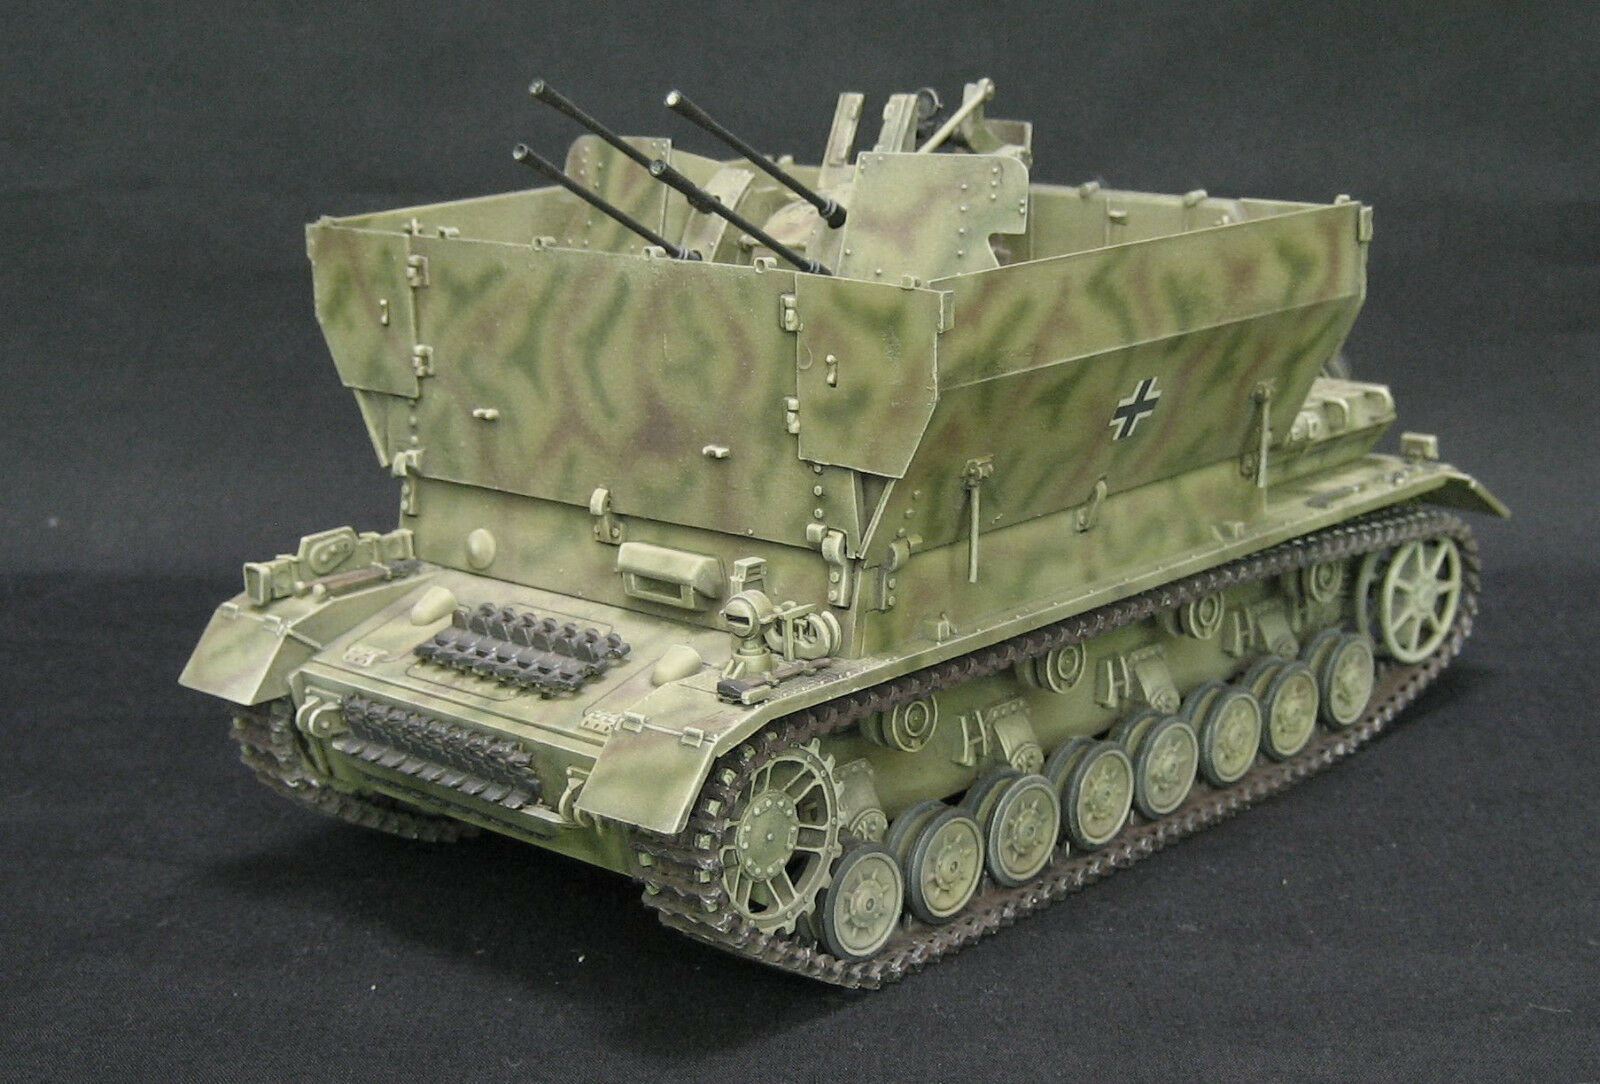 TAMIYA GERMAN FLAKPANZER IV FLAK PRO BUILT AND PAINTED 1 35 MODEL KIT